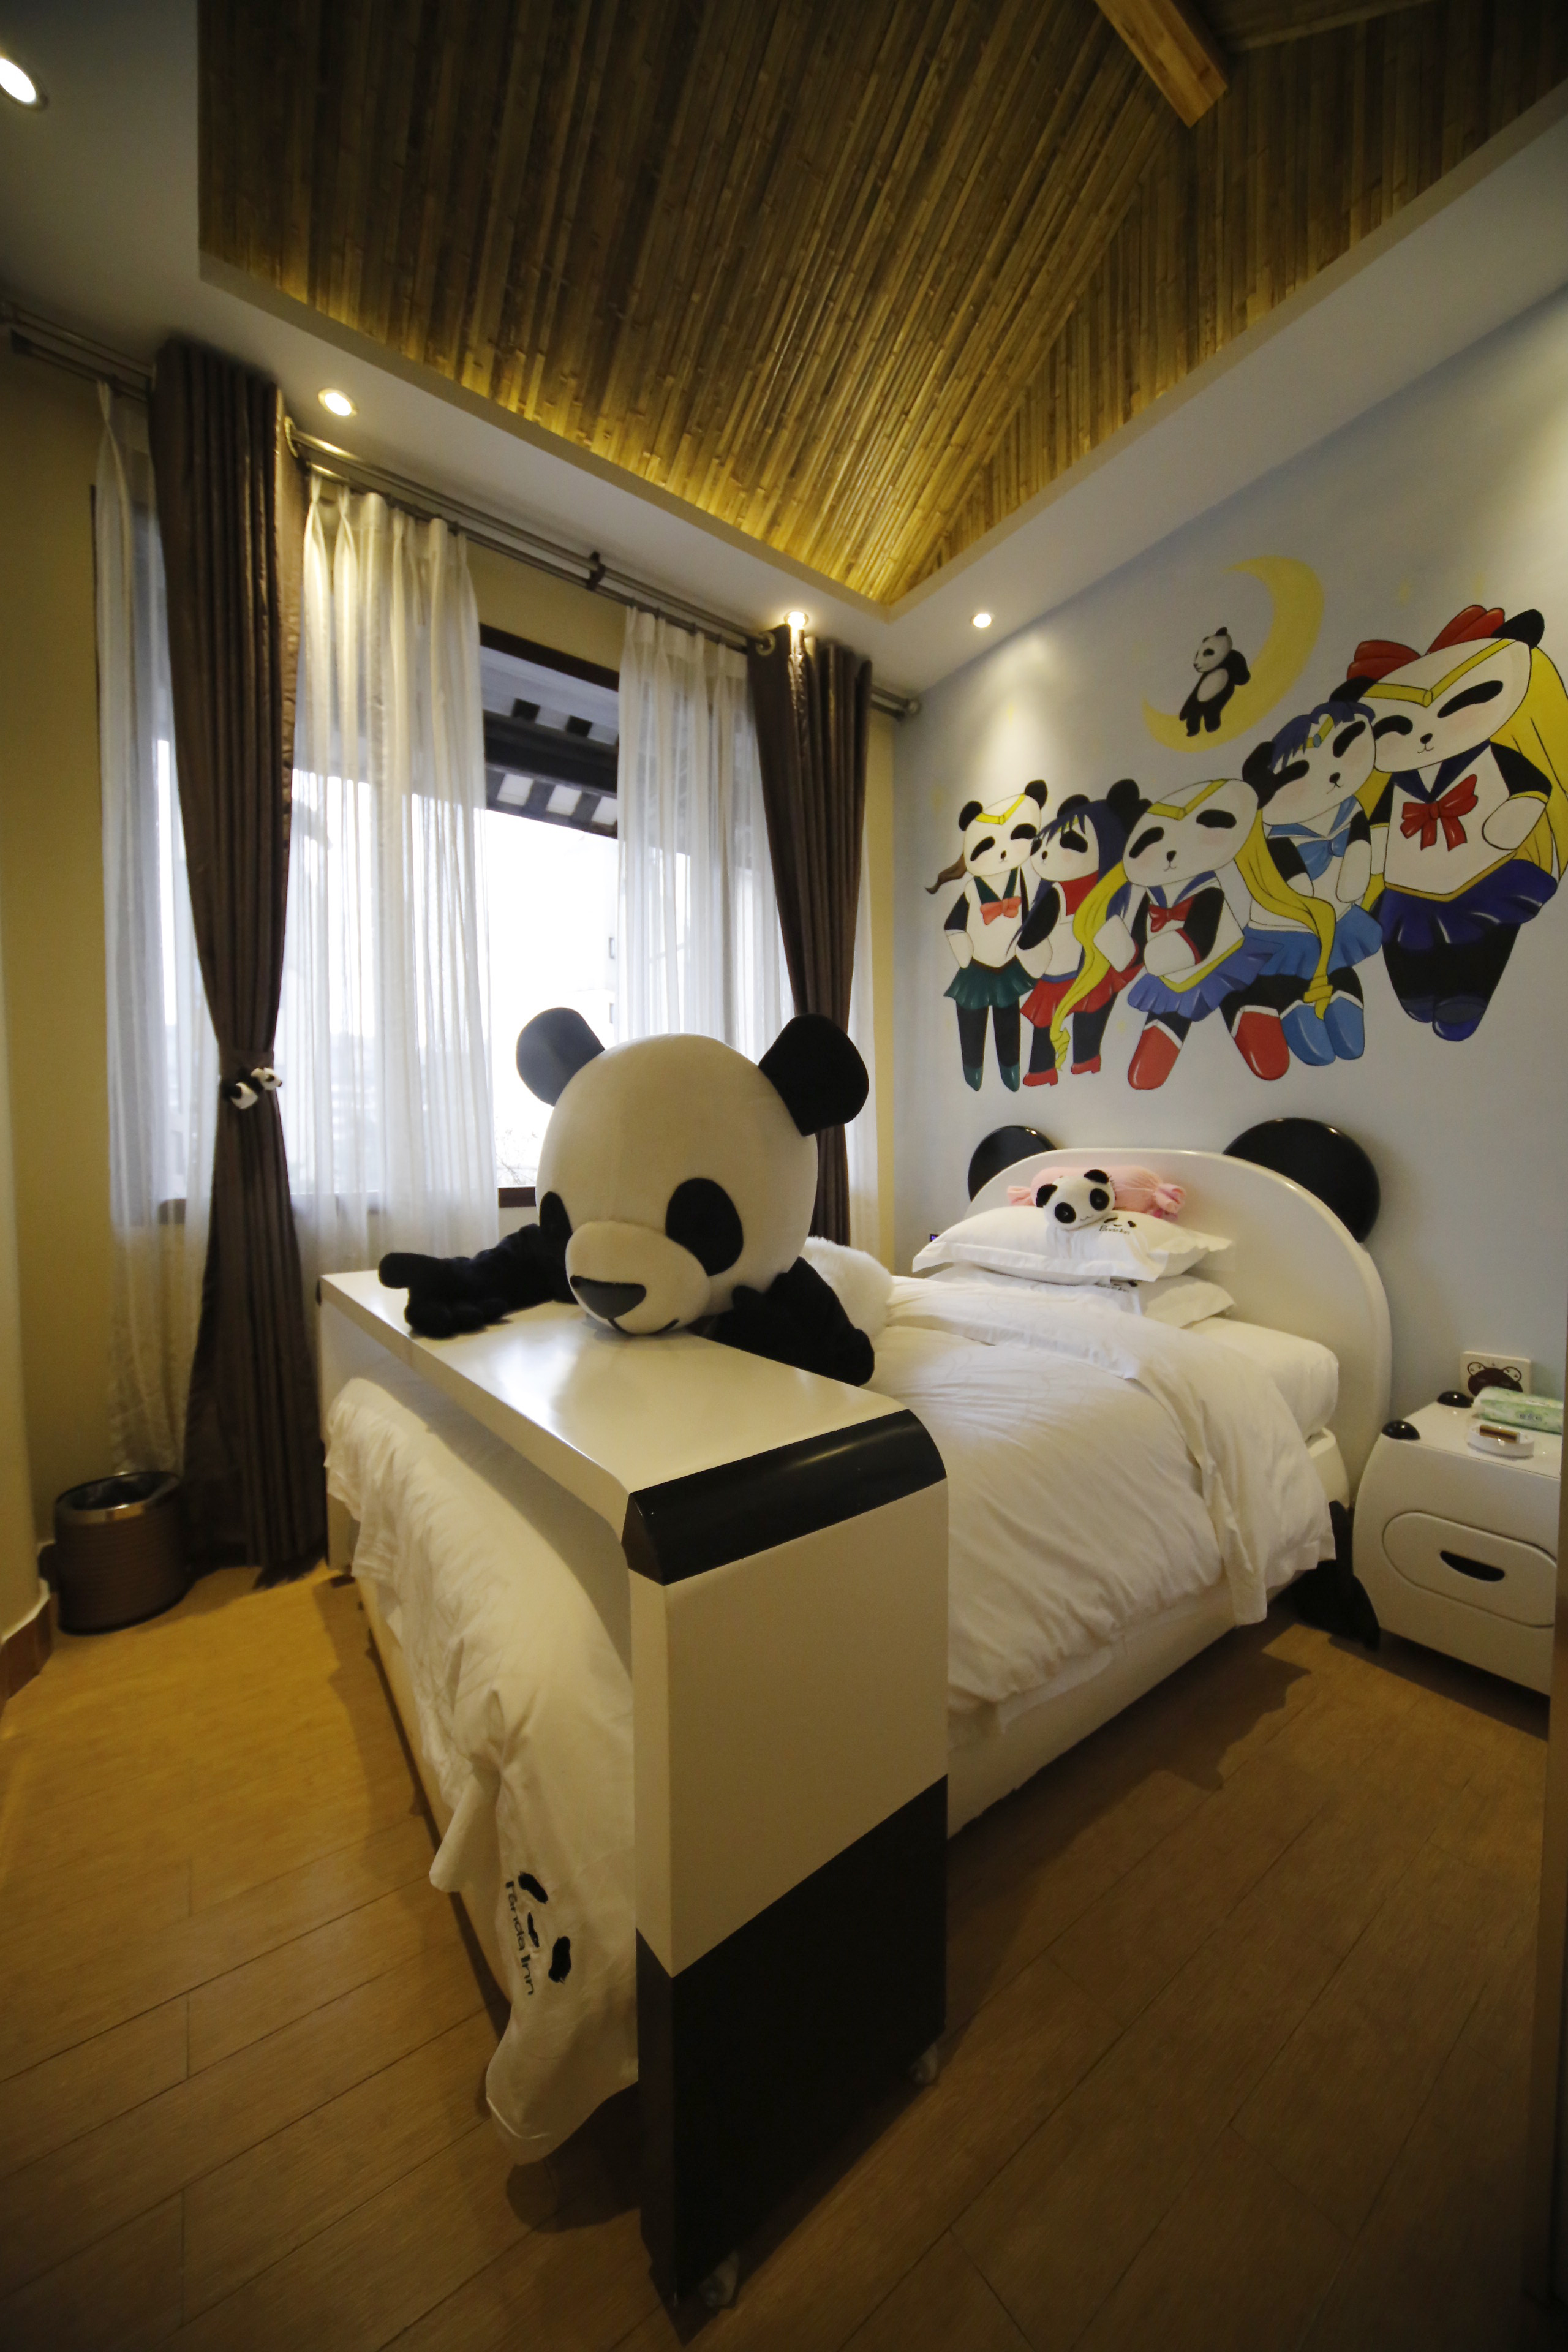 A panda toy on a bed in a room of a panda-themed hotel